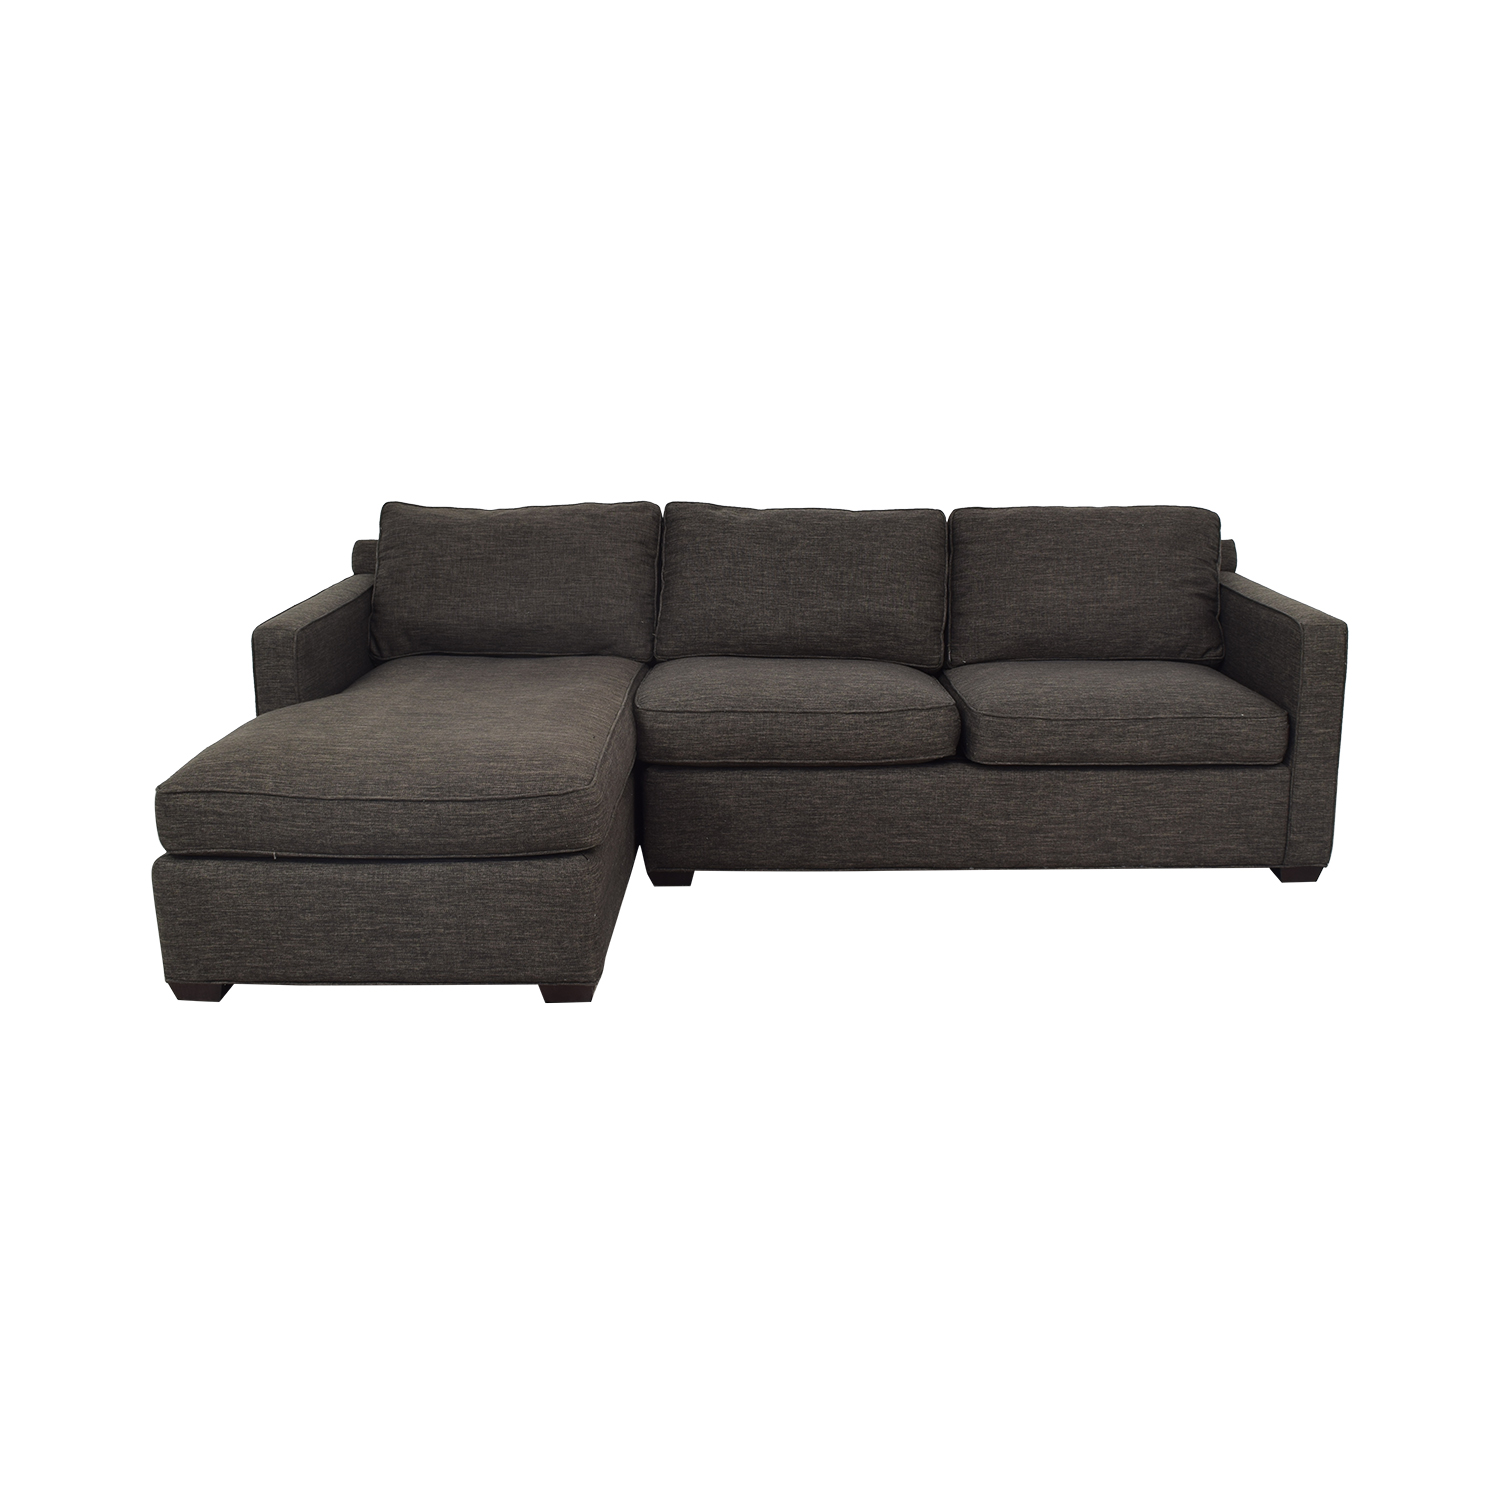 59% OFF - Crate & Barrel Crate & Barrel Davis Sectional Couch with Chaise /  Sofas